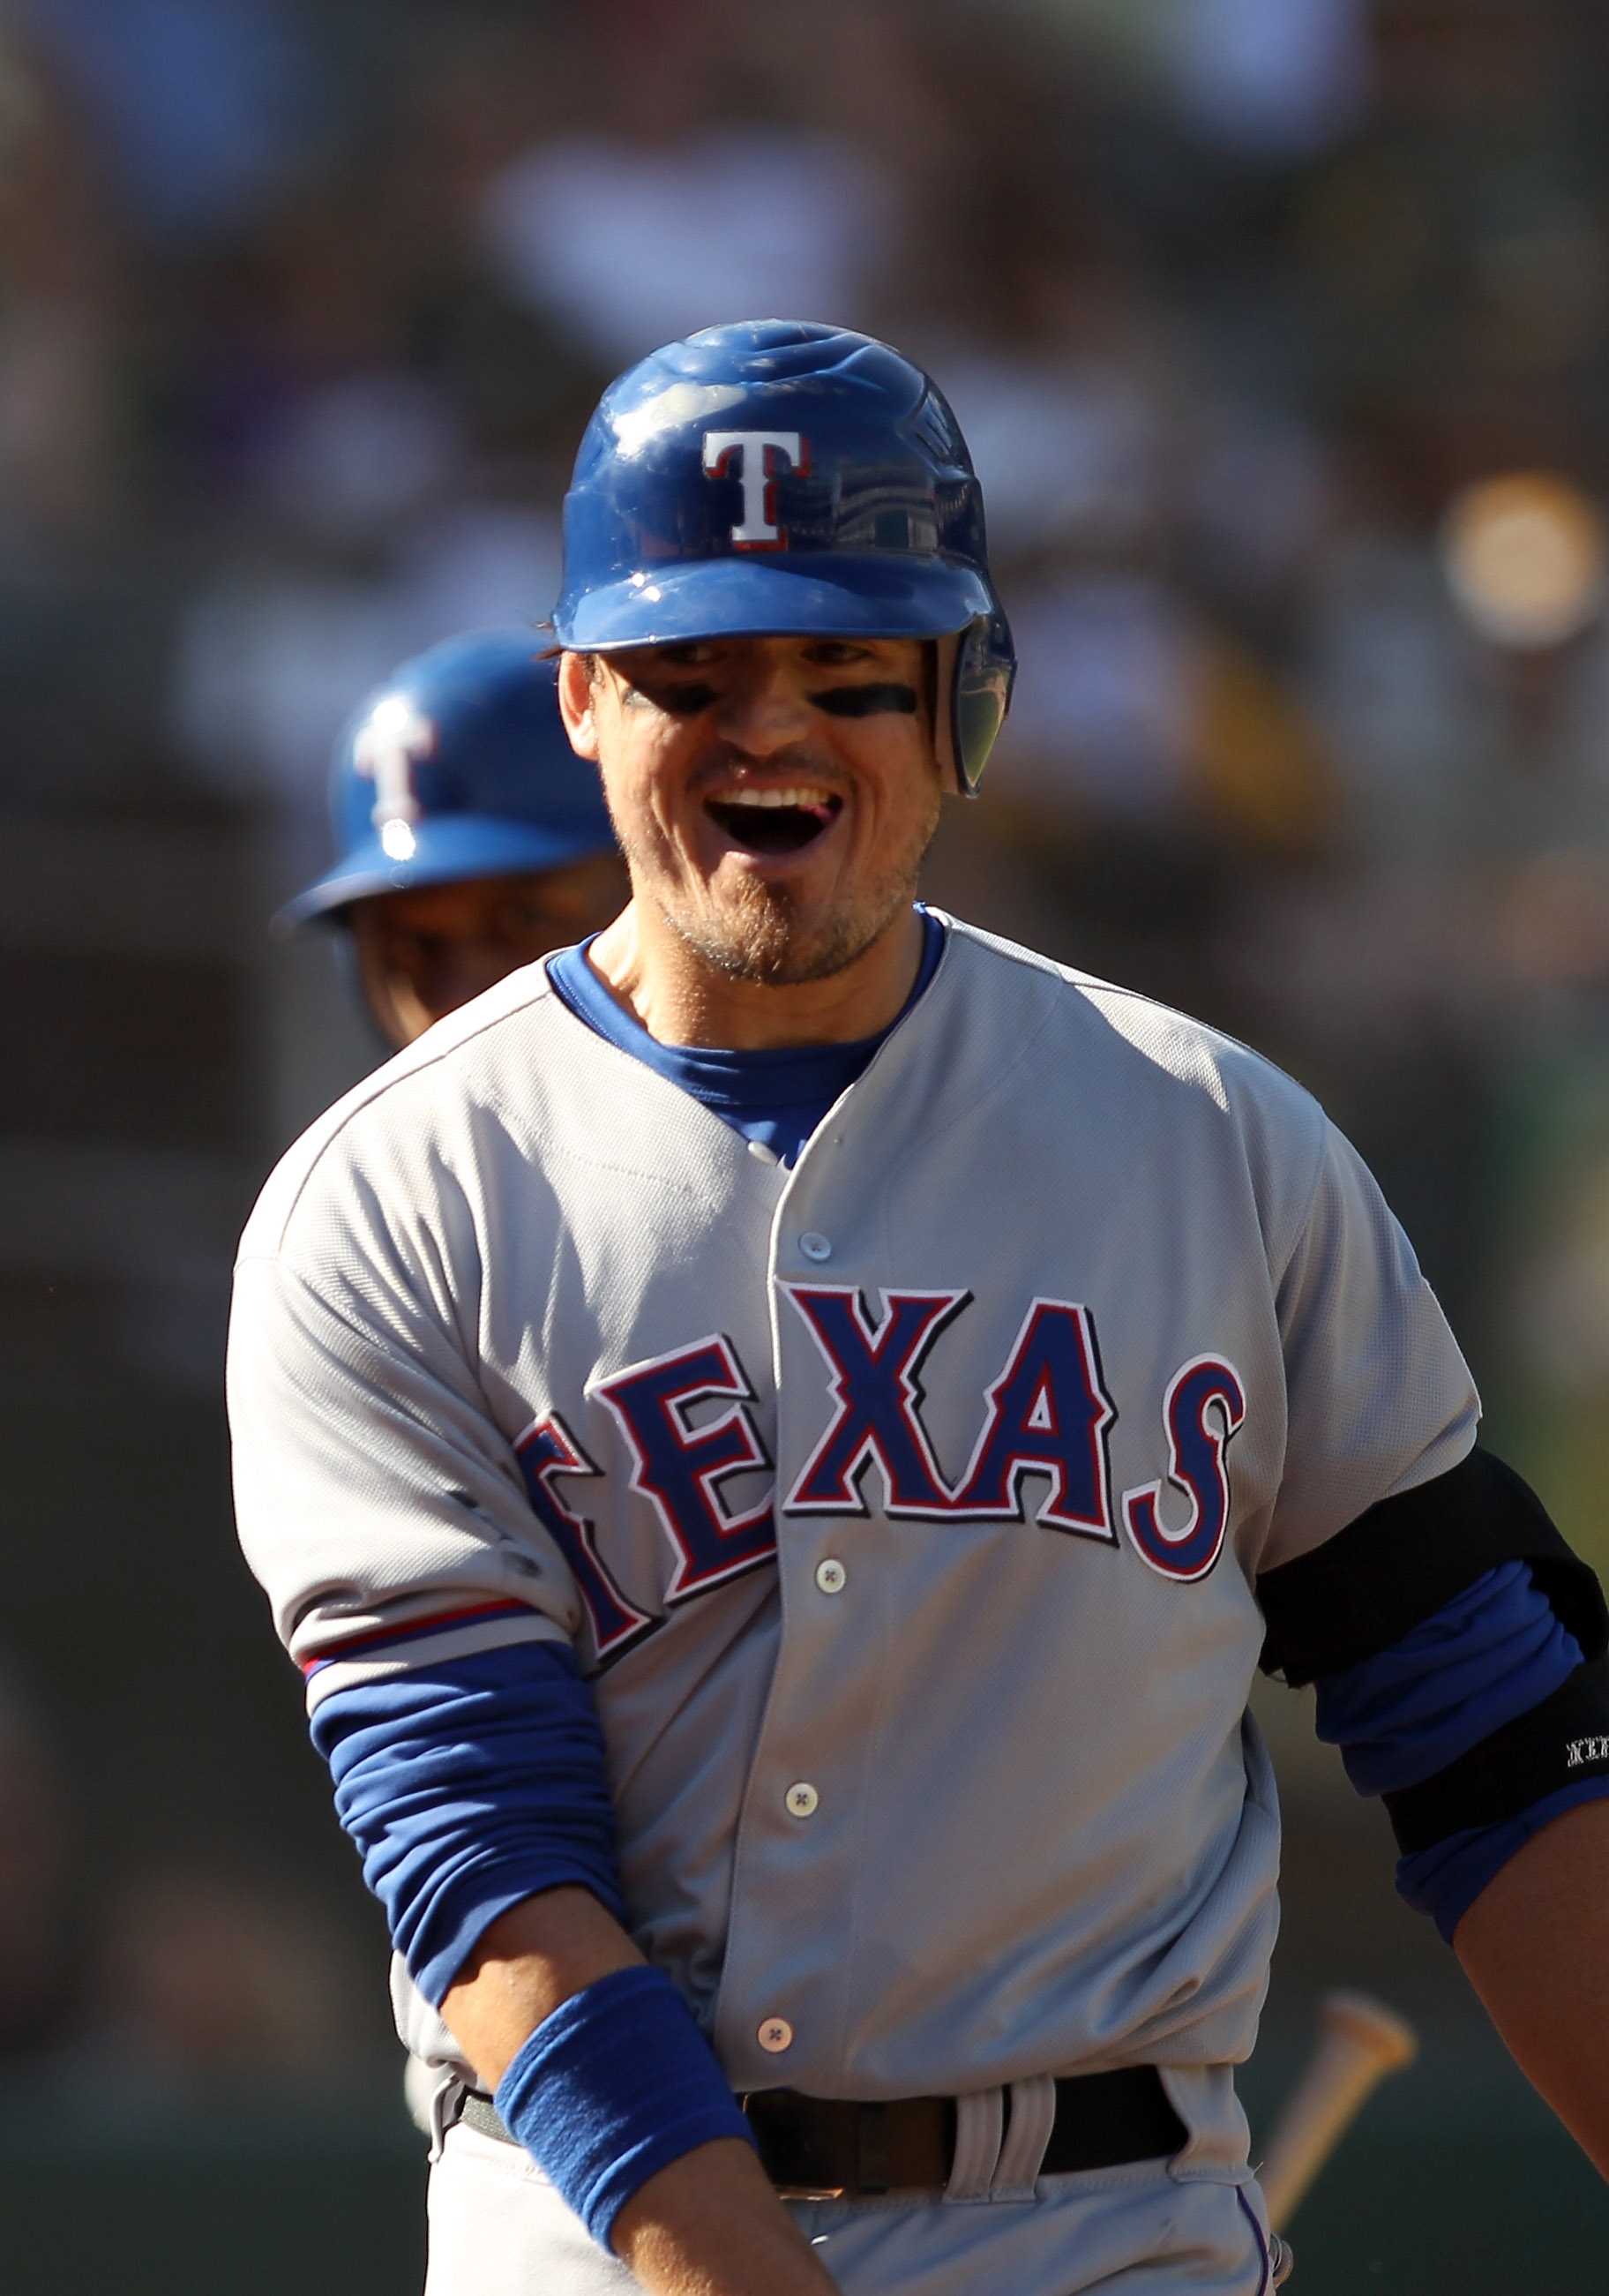 OAKLAND, CA - SEPTEMBER 25:  Jorge Cantu #8 of the Texas Rangers celebrates after he hit the game winning home run against the Oakland Athletics at the Oakland-Alameda County Coliseum on September 25, 2010 in Oakland, California. The Rangers clinched the